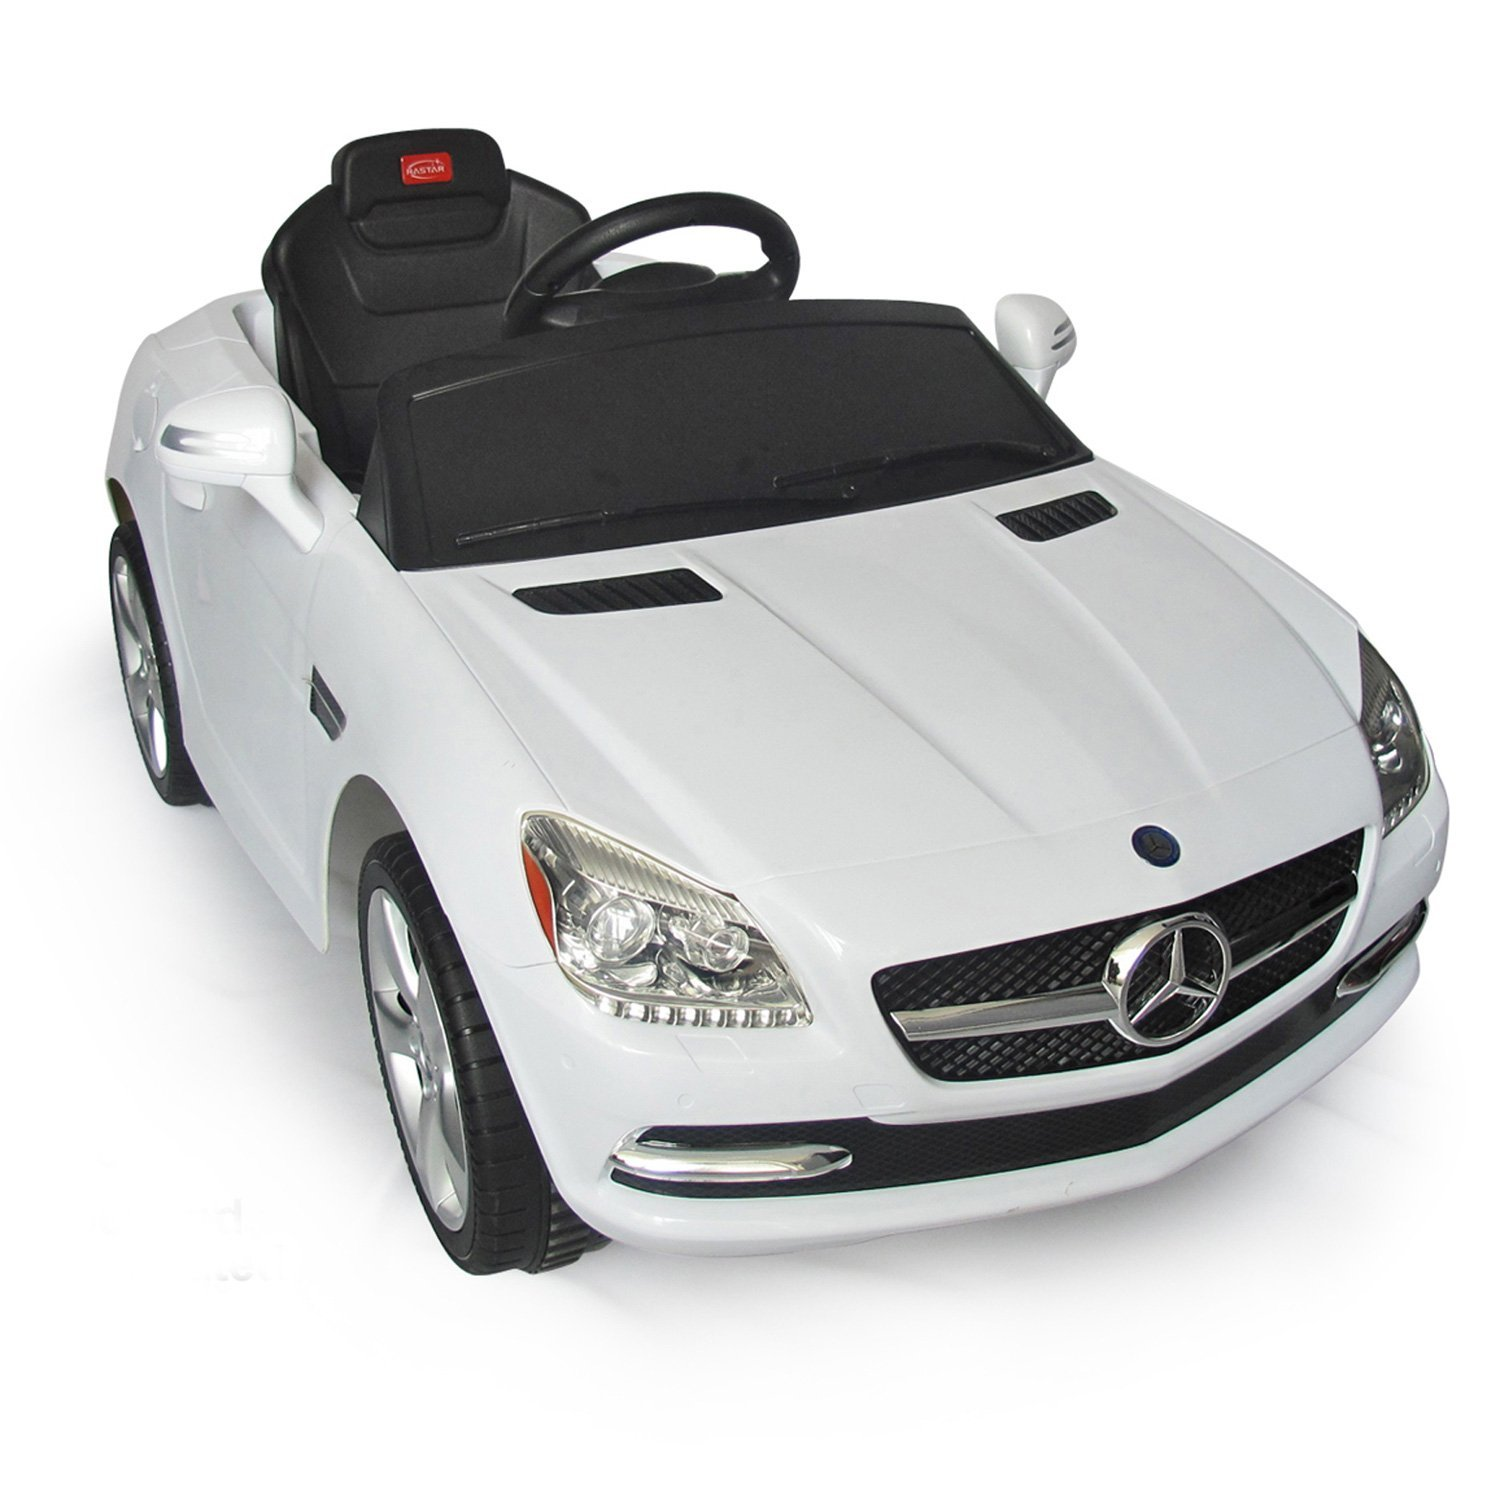 Remote Control Ride On Car Awesome Mercedes Benz Slk Rc Kids Electric Ride On Car – Back to the Future